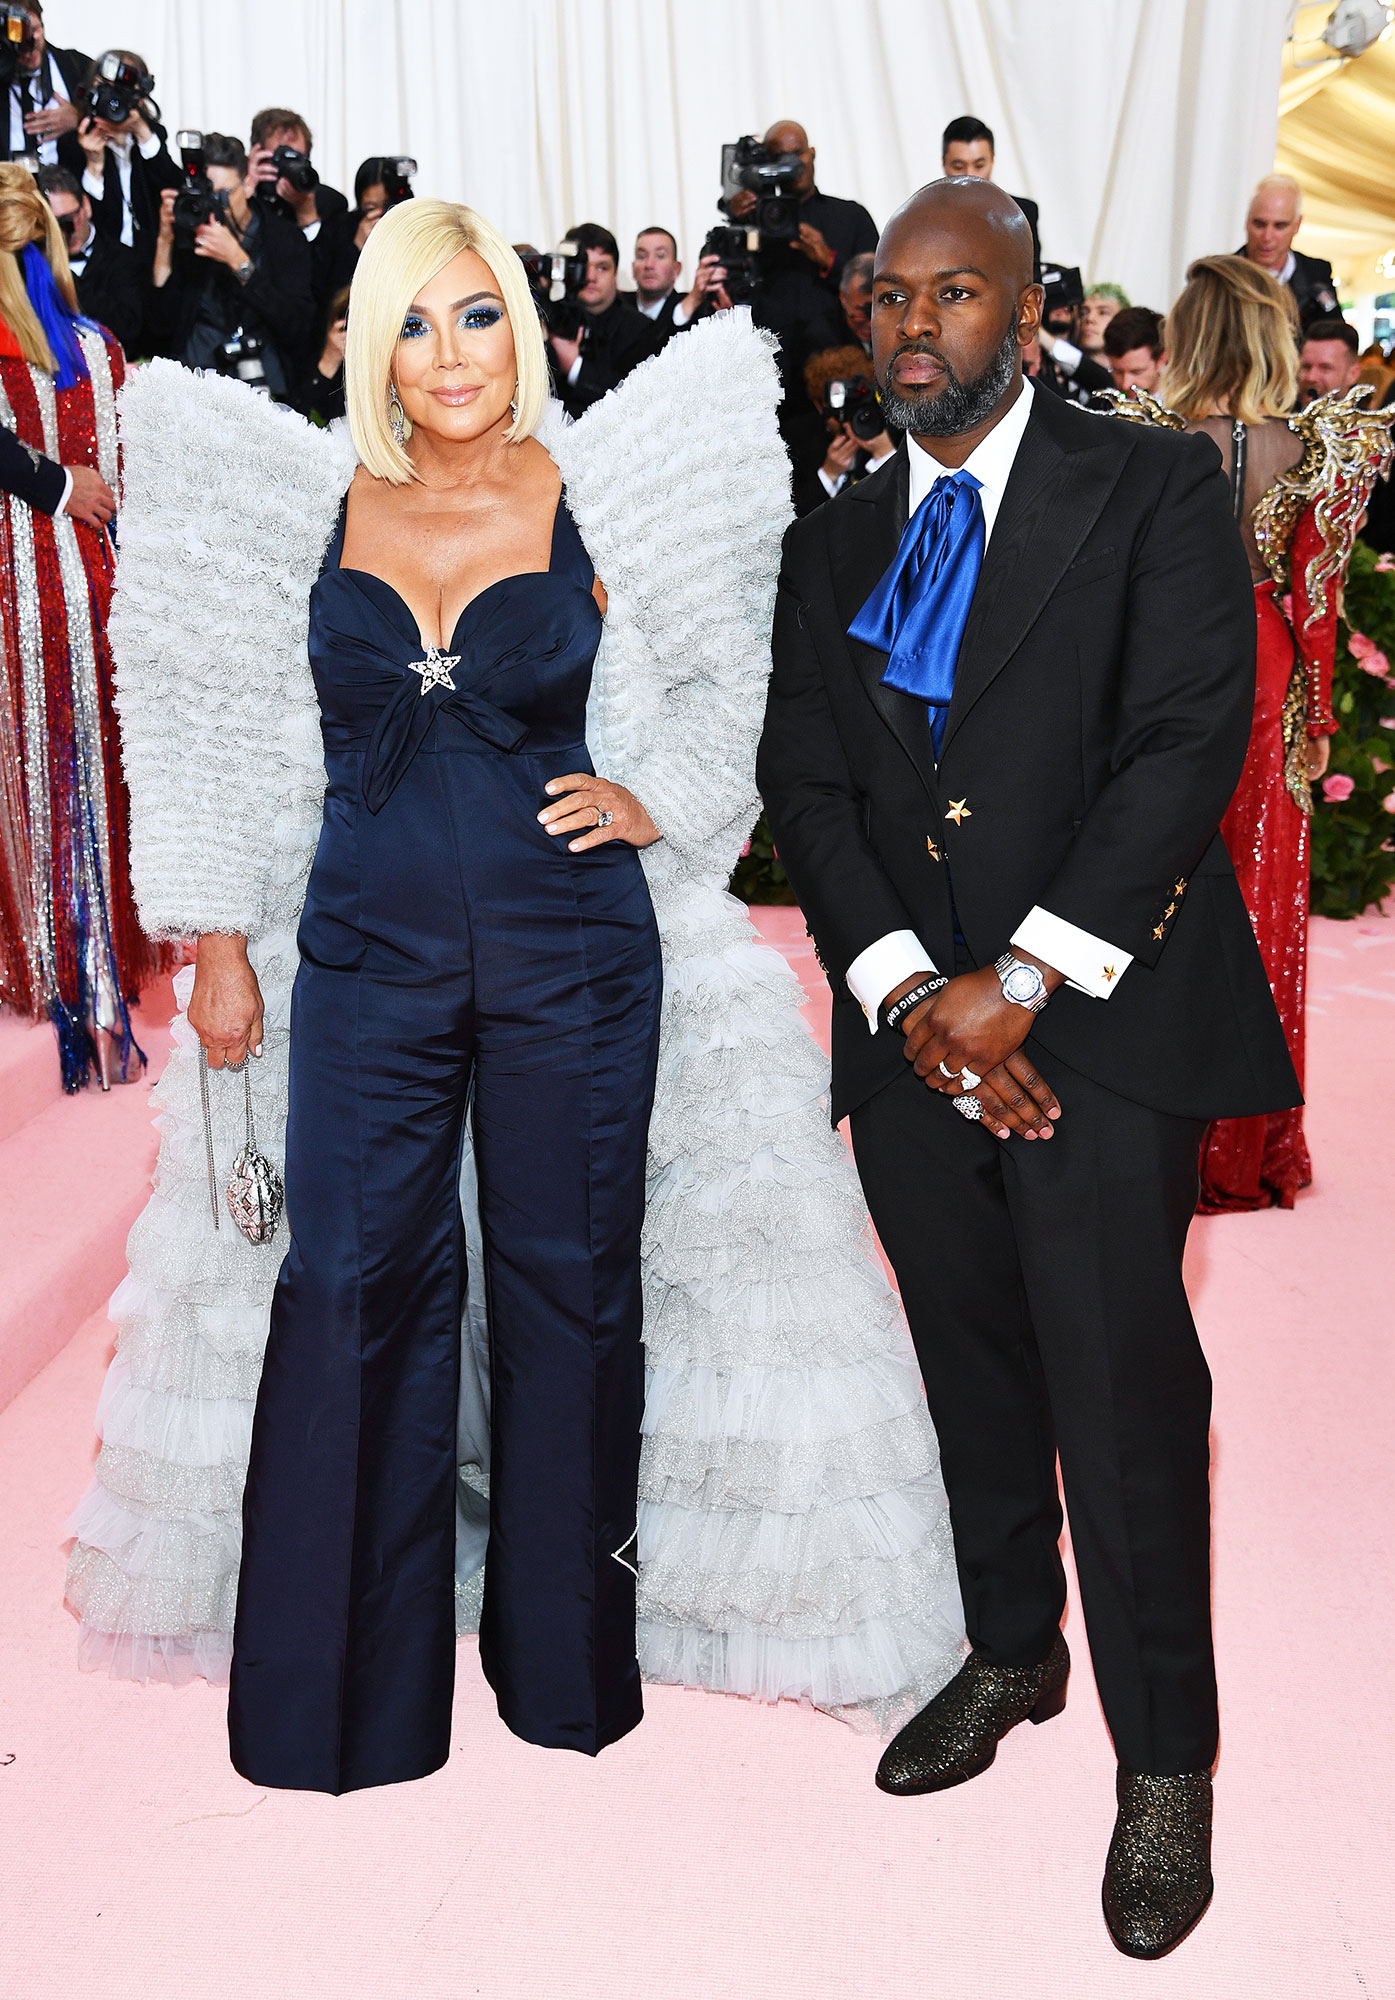 Kris Jenner and Corey Gamble met gala 2019 couples - Stars were a recurring theme on the momager and her SO's celestial-inspired Tommy Hilfiger ensembles.